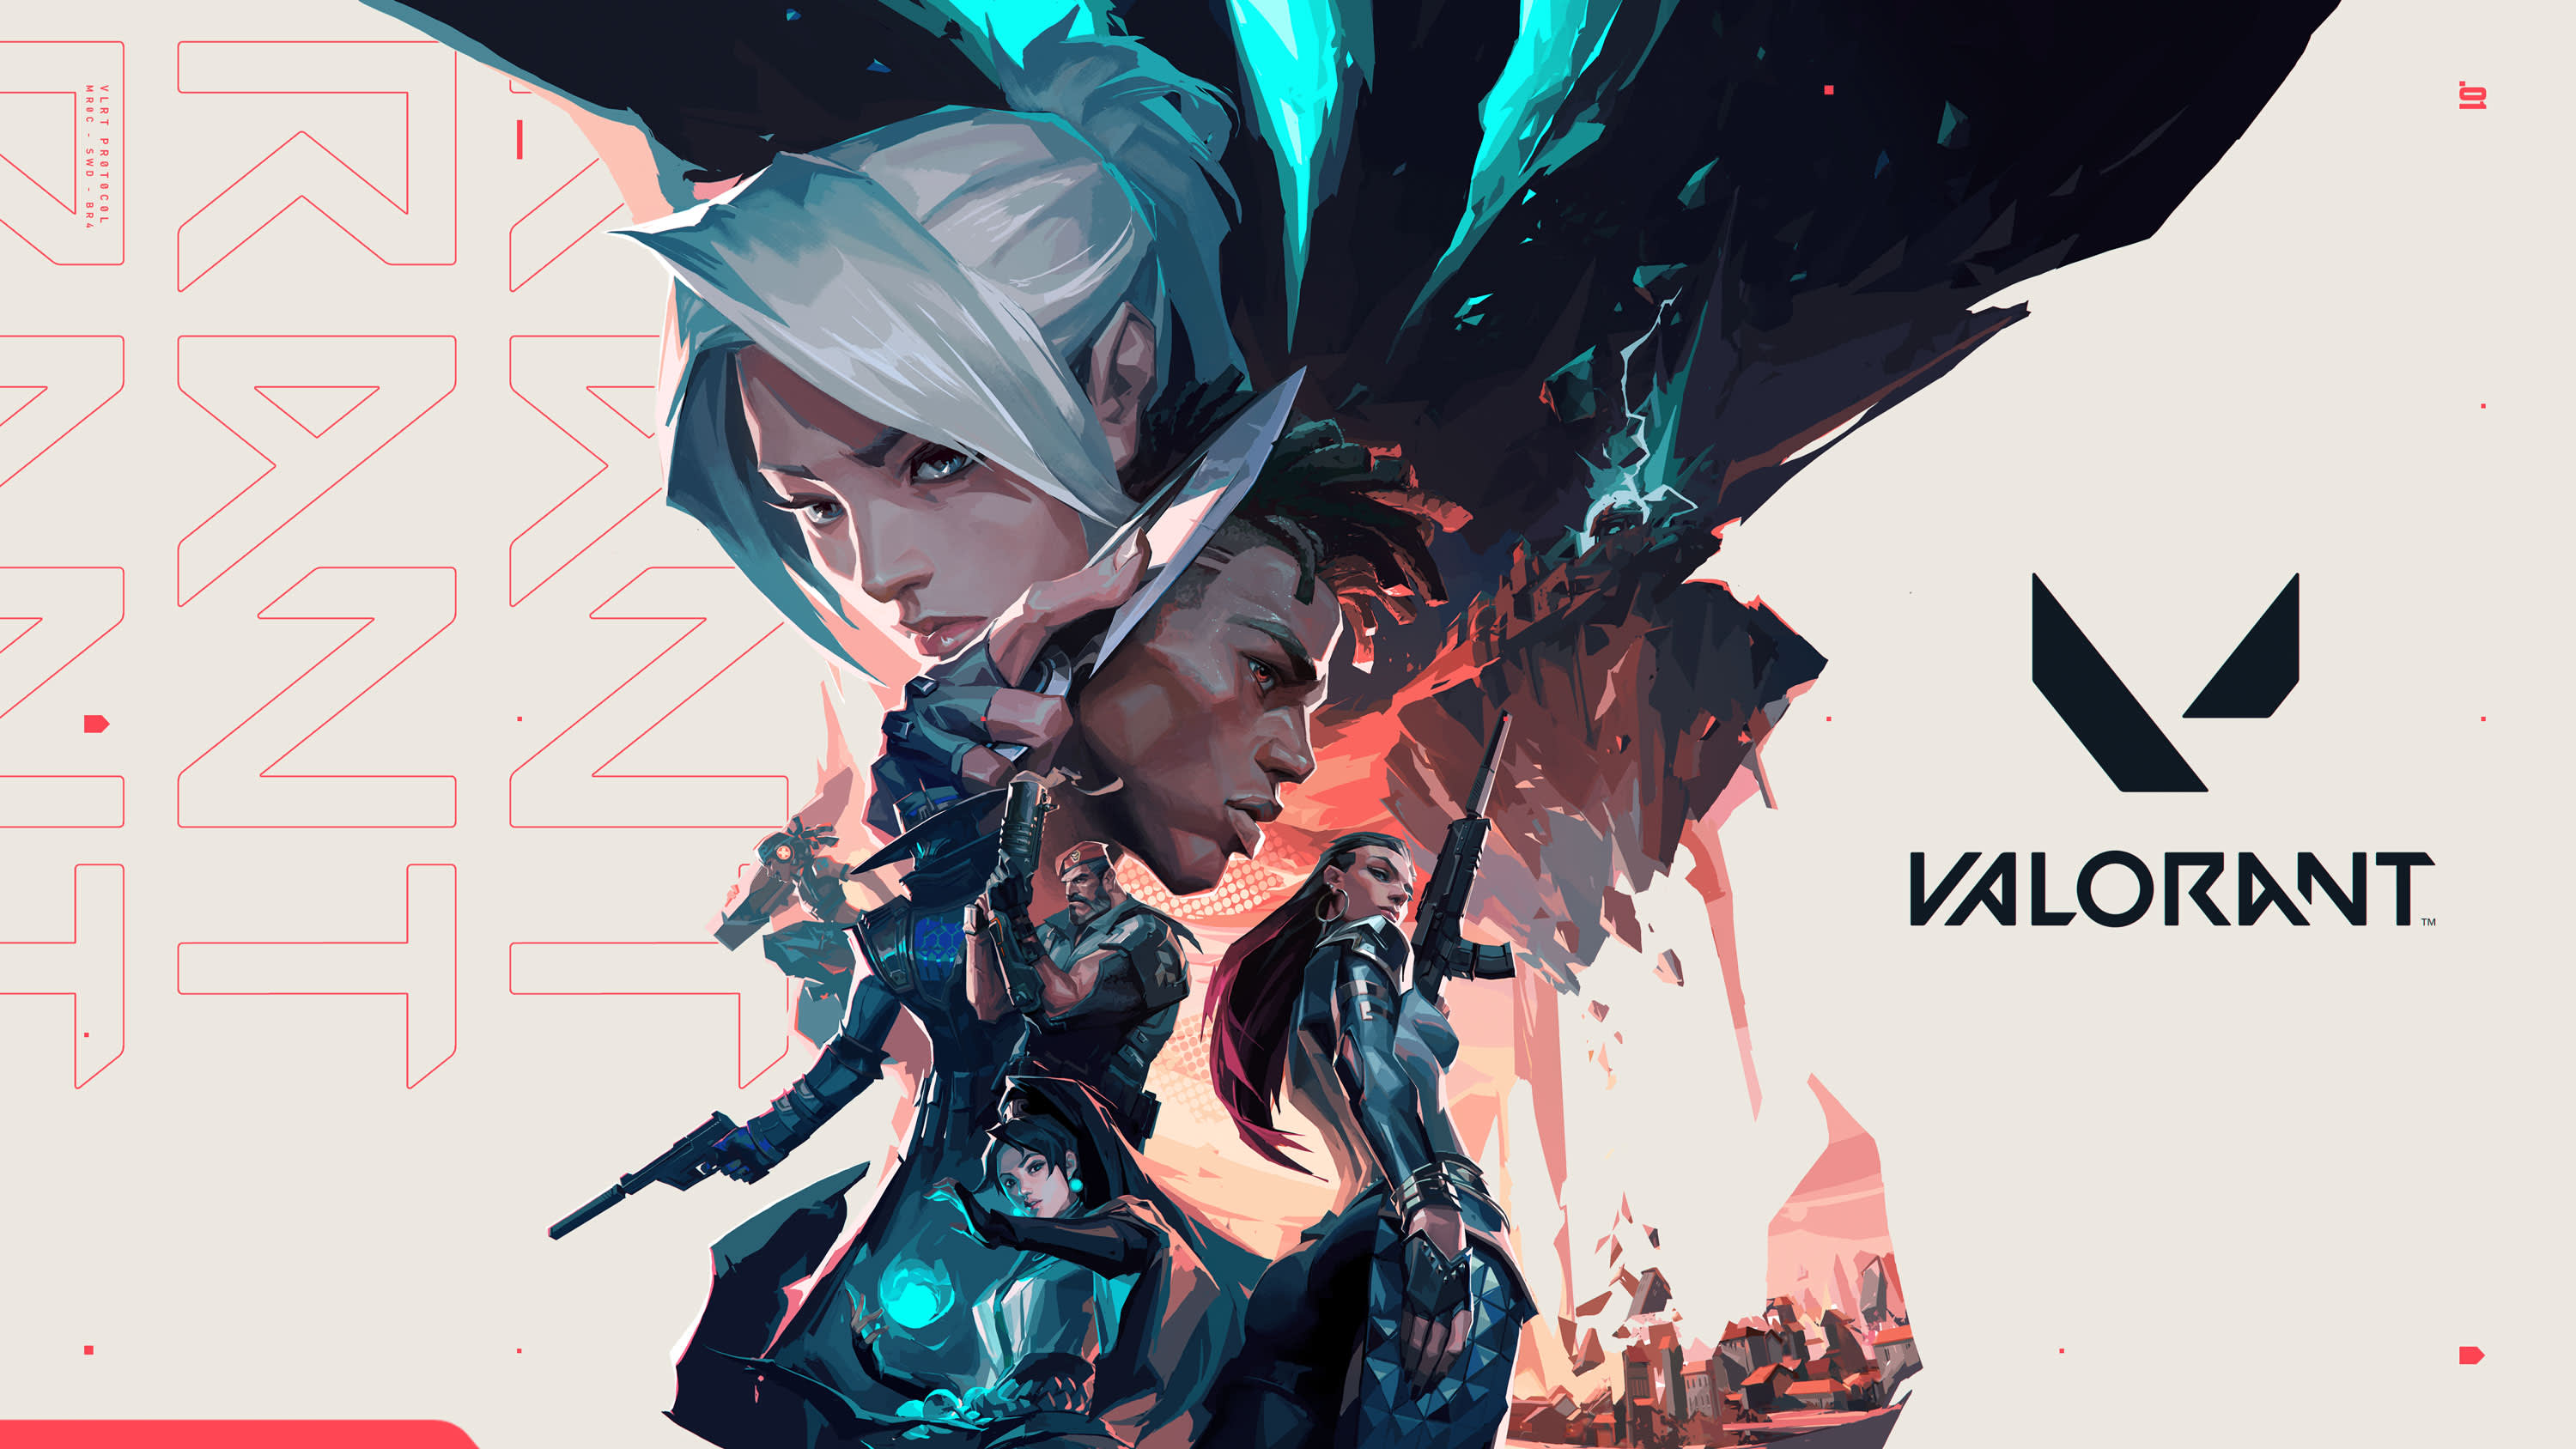 Valorant Launch Poised To Be Next Billion Dollar Gaming Franchise